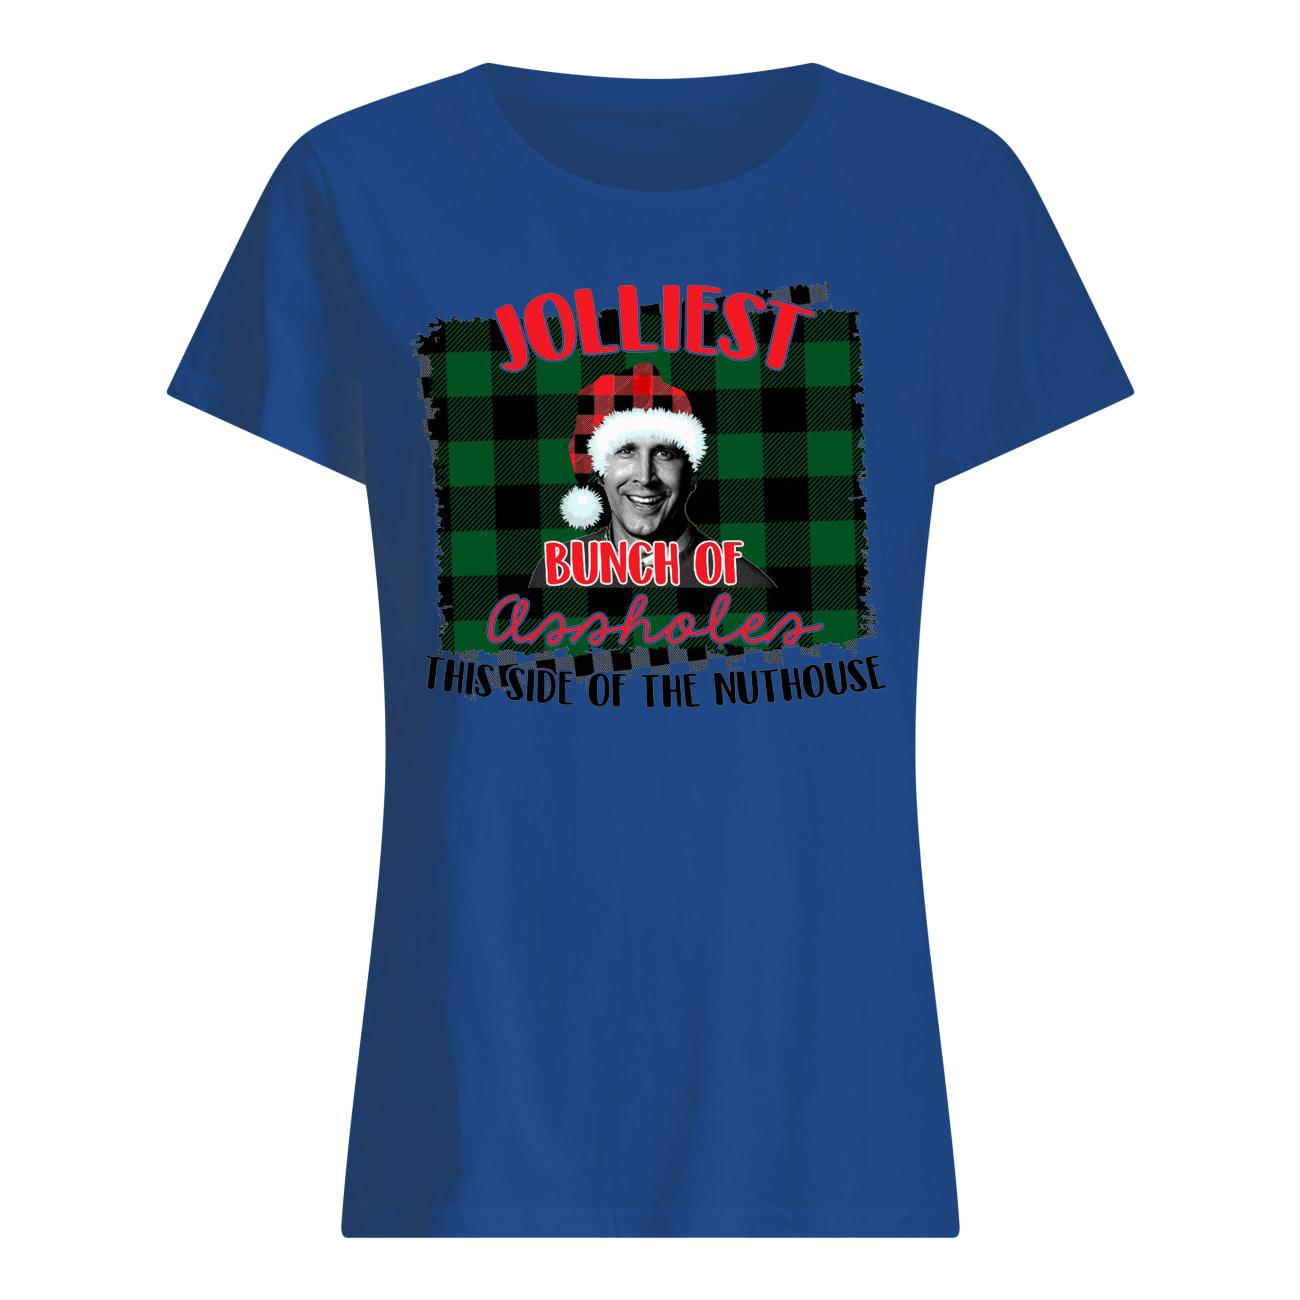 Jolliest bunch of assholes this side of the nuthouse national lampoon's christmas vacation womens shirt